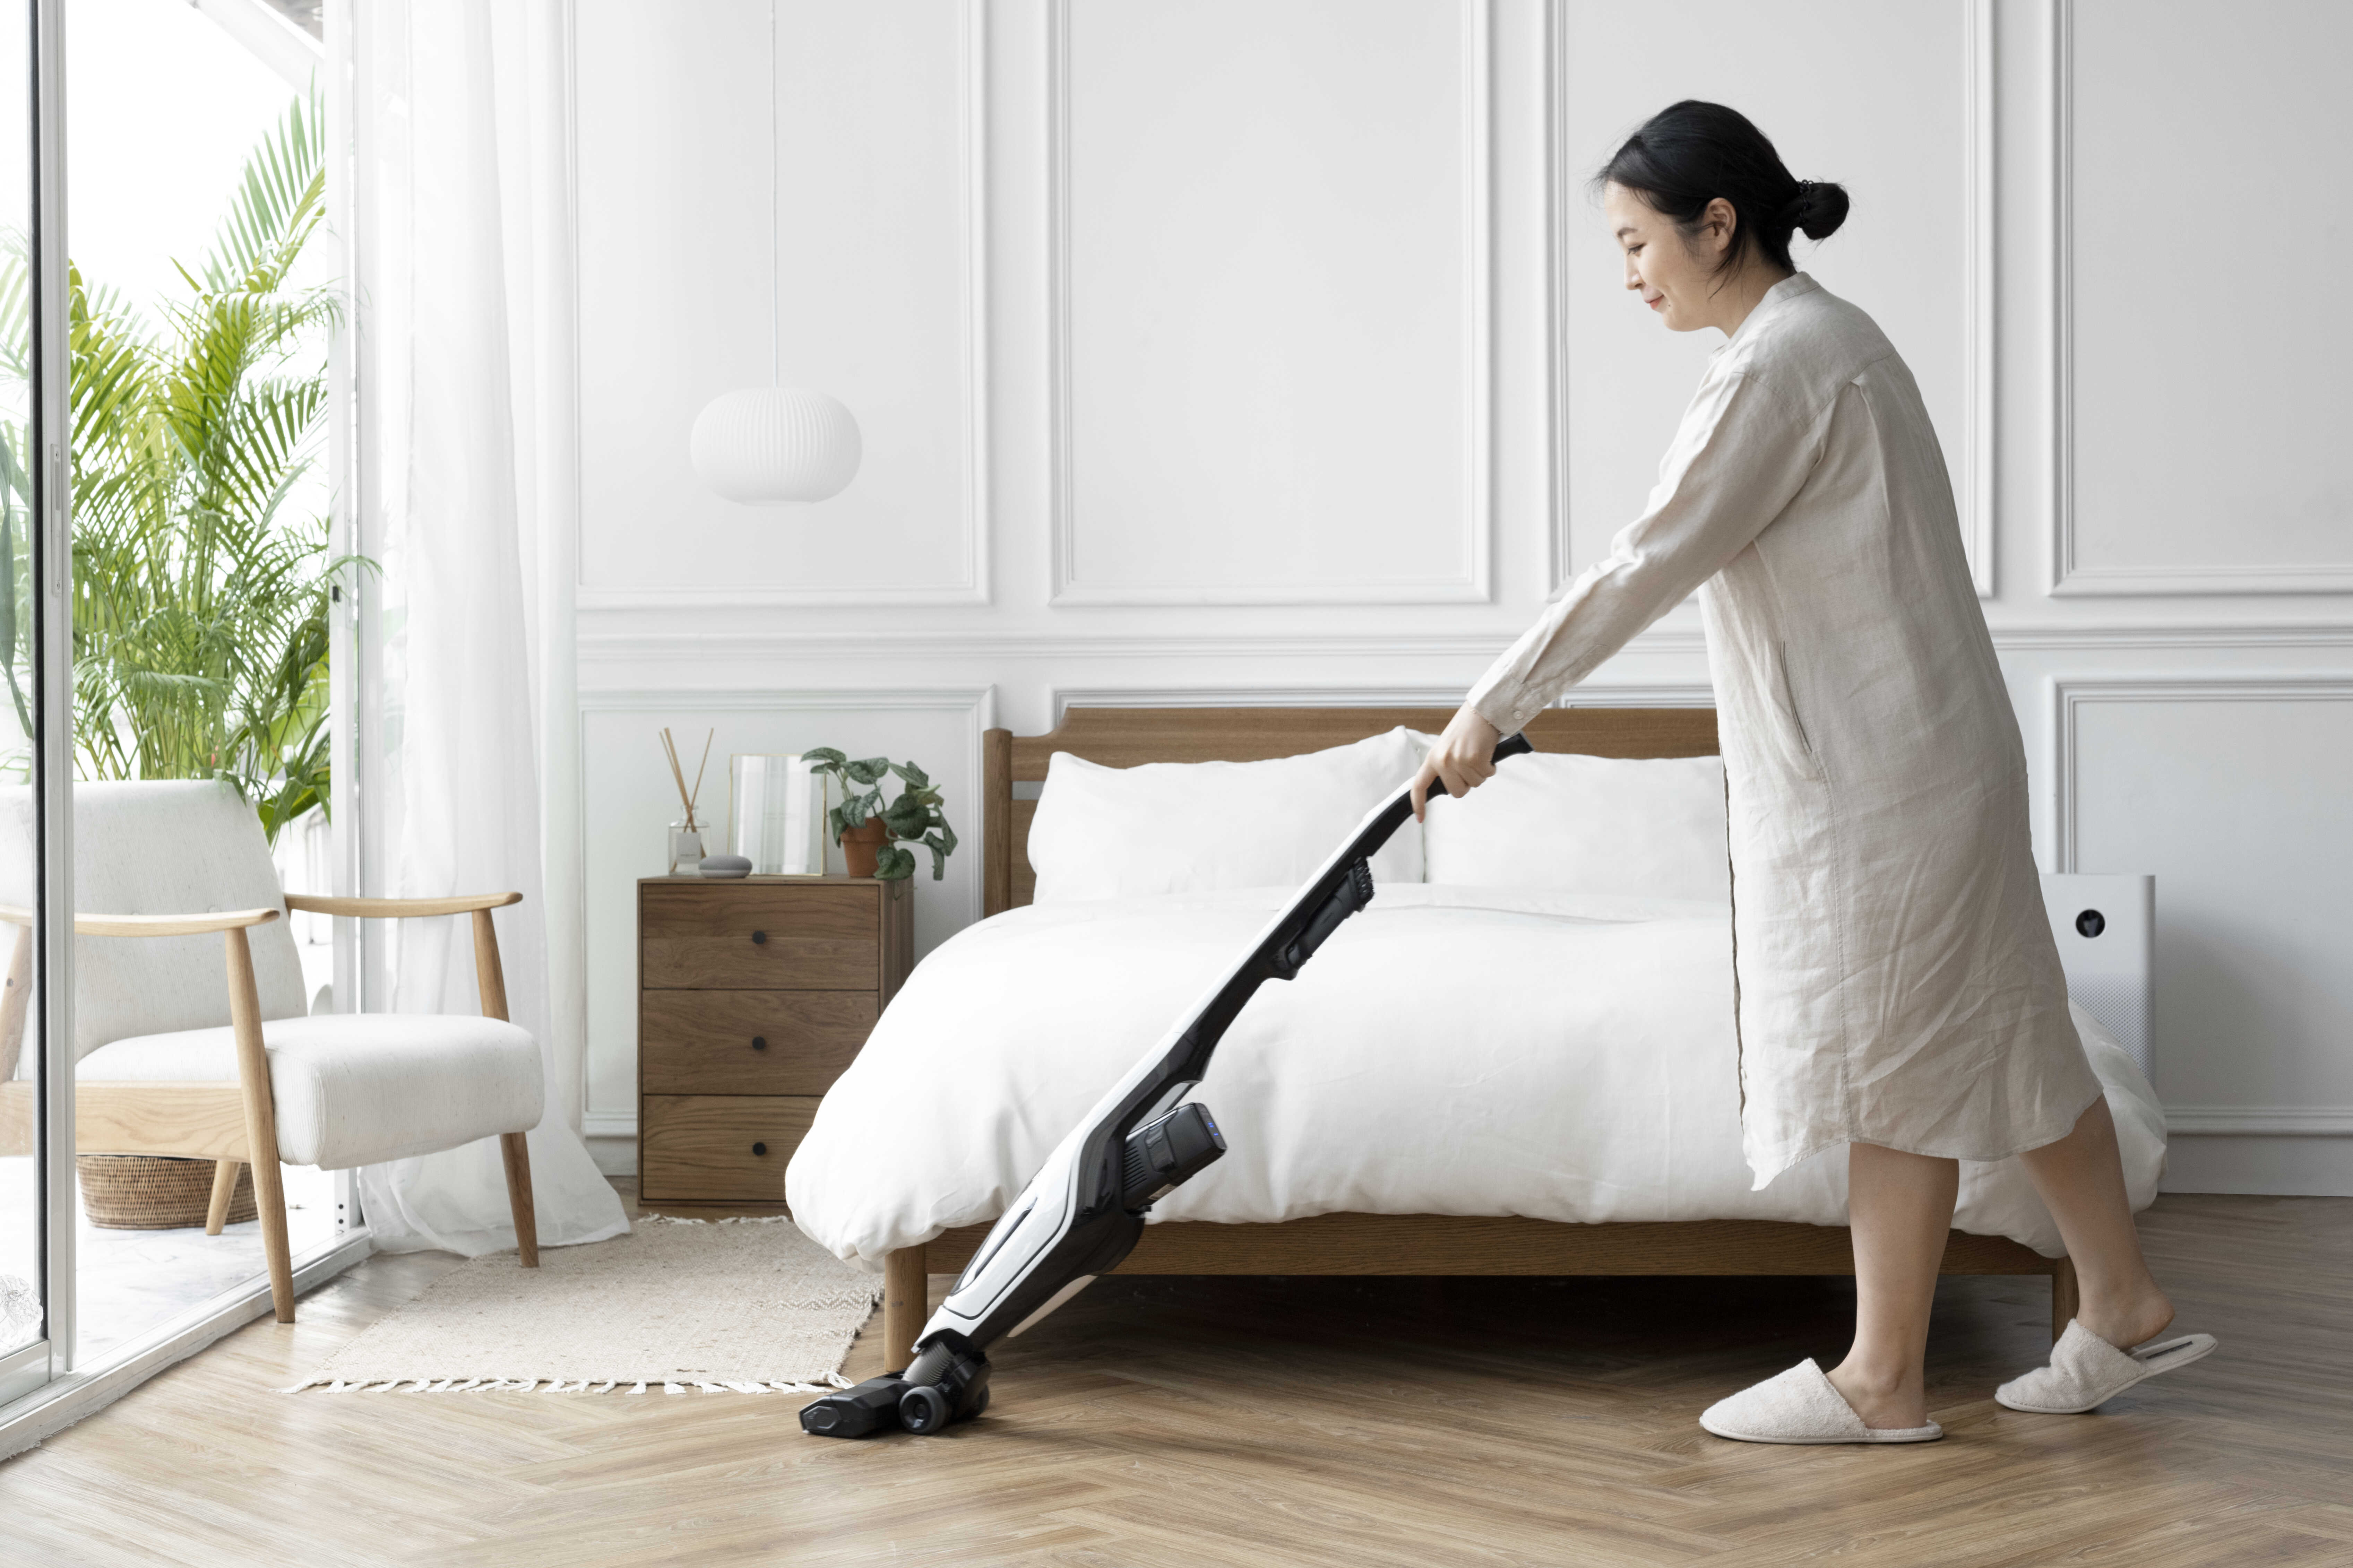 Woman cleaning bedroom